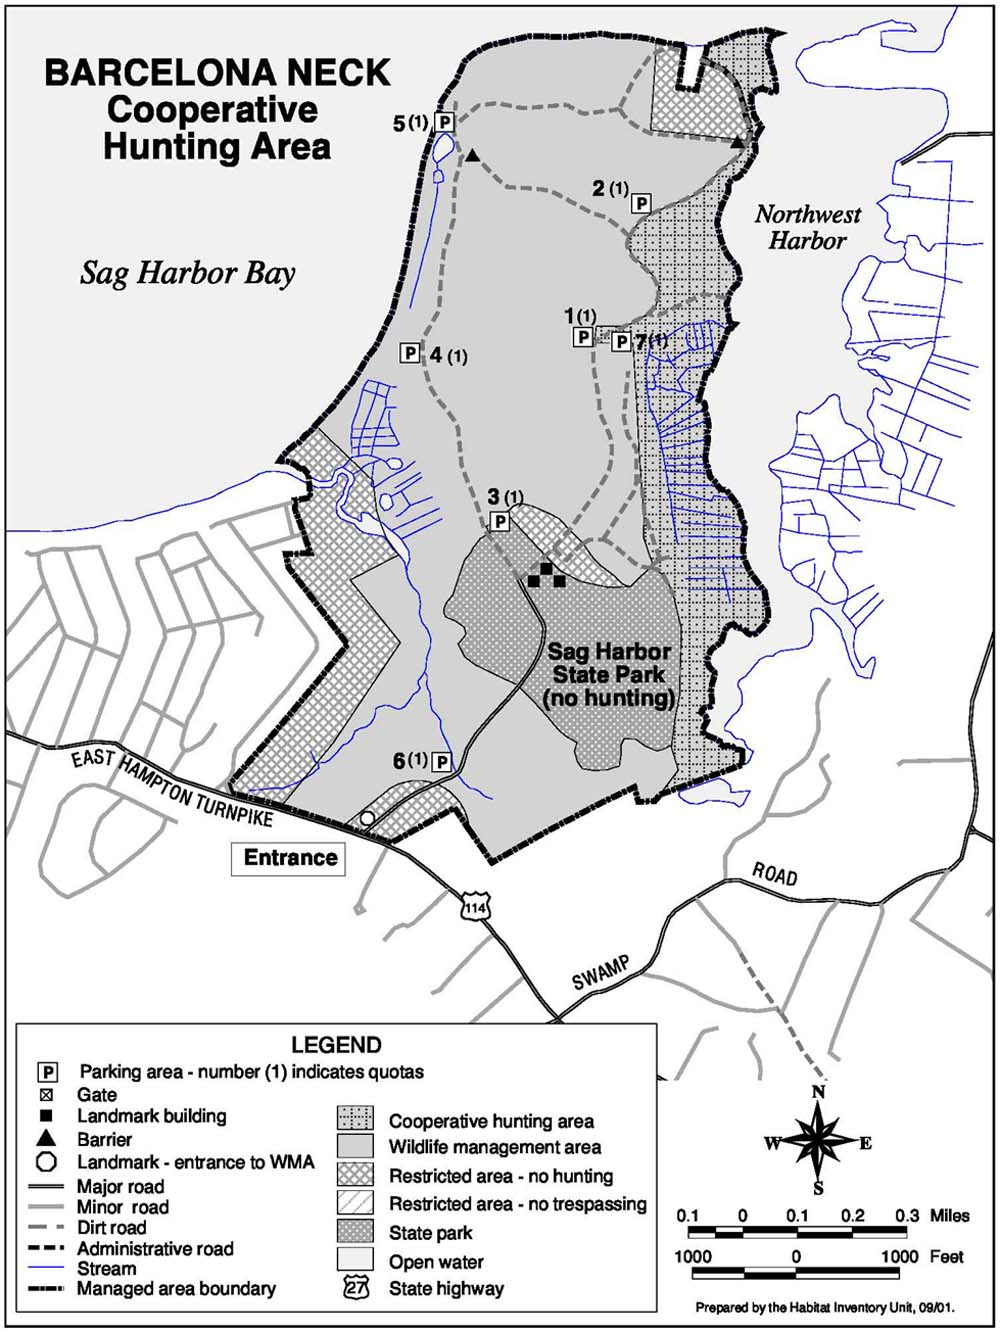 Barcelona Neck Cooperative Hunting Area Map - NYS Dept. of ... on areas of copenhagen map, areas of boston map, areas of athens map, areas of seattle map, areas of greece map, areas of new york map, areas of london map, areas of abu dhabi map, areas of milan map, areas of spain map, areas of atlanta map, areas of houston map, areas of cadiz map, areas of new orleans map, areas of tampa map, areas of rome map, areas of berlin map, areas of los angeles map, areas of bangkok map, areas of chicago map,